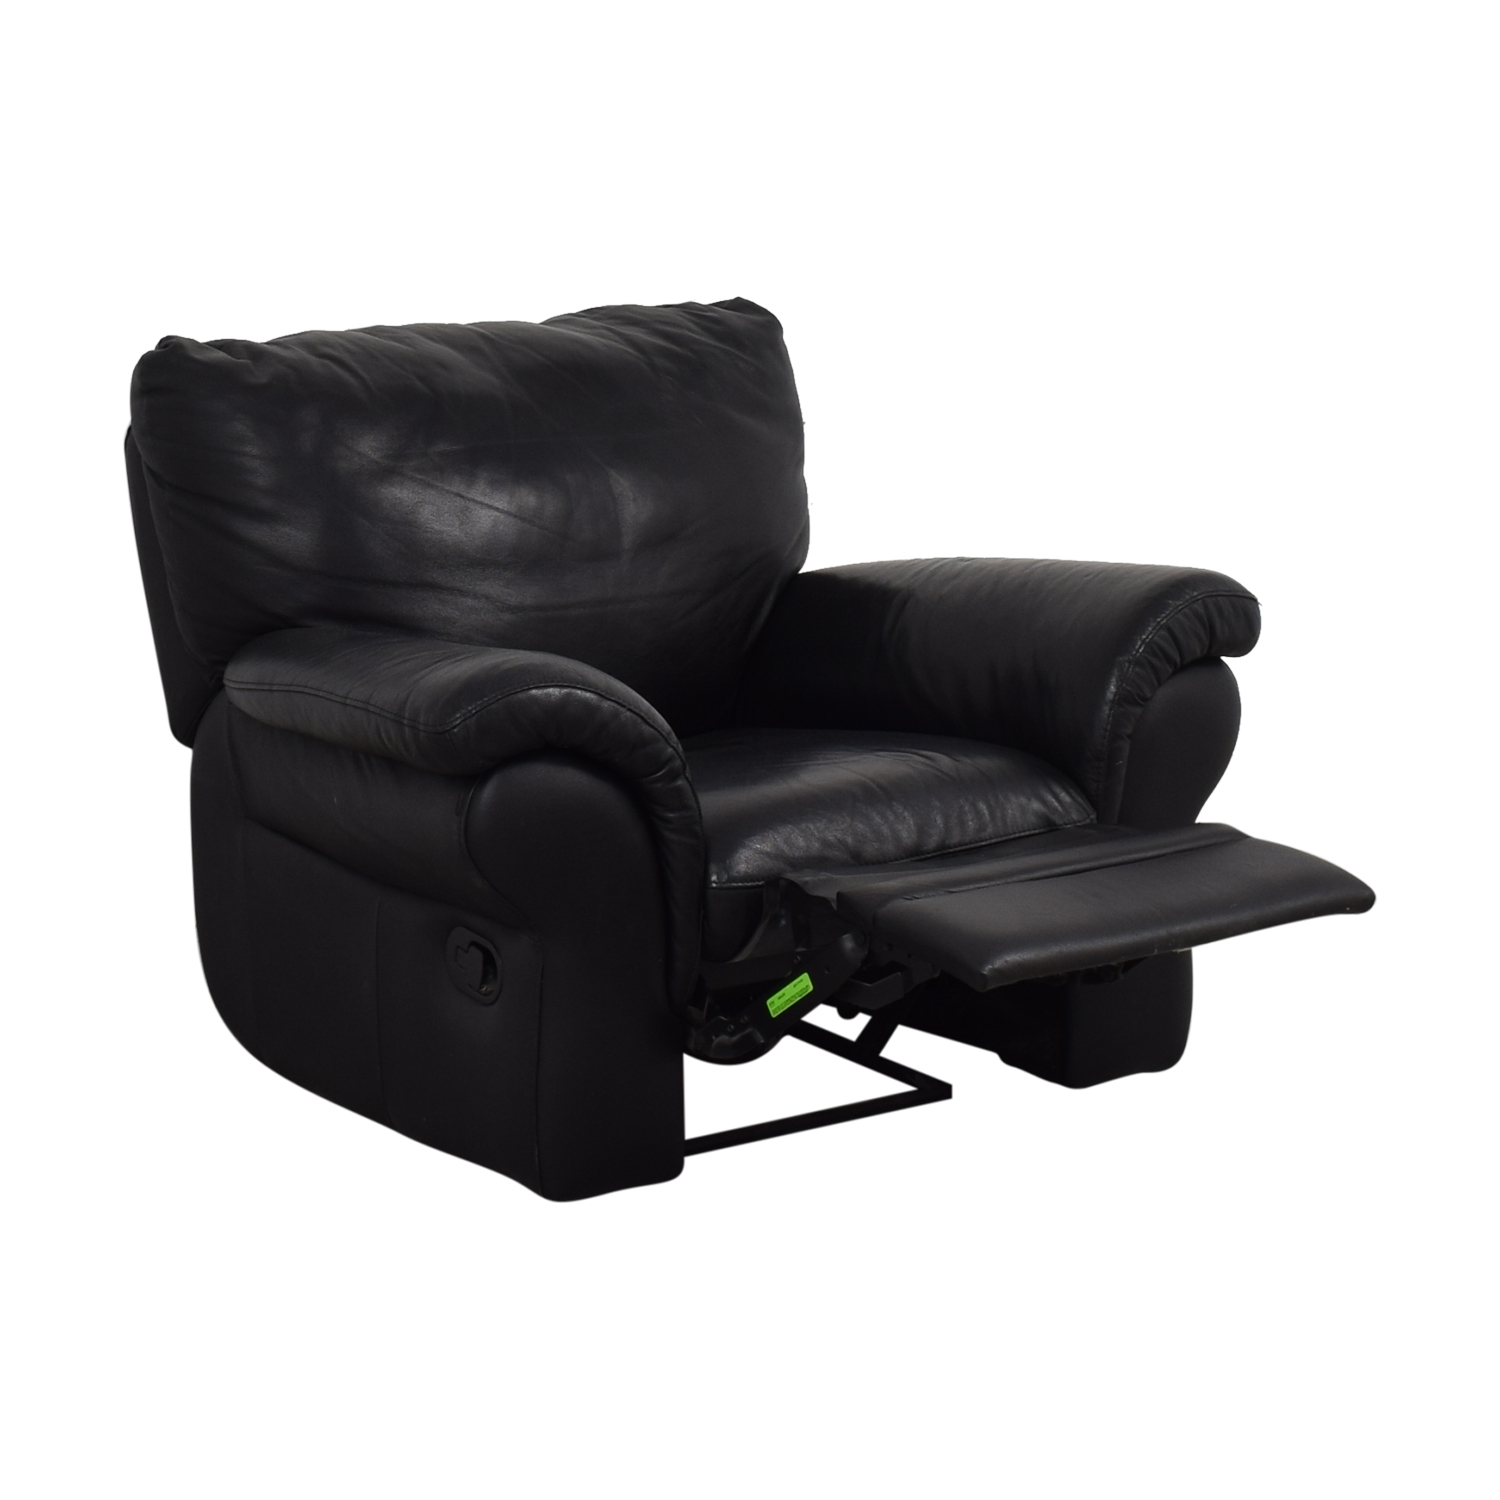 Bloomingdale's Bloomingdale's Black La-Z-Boy Recliner Chairs